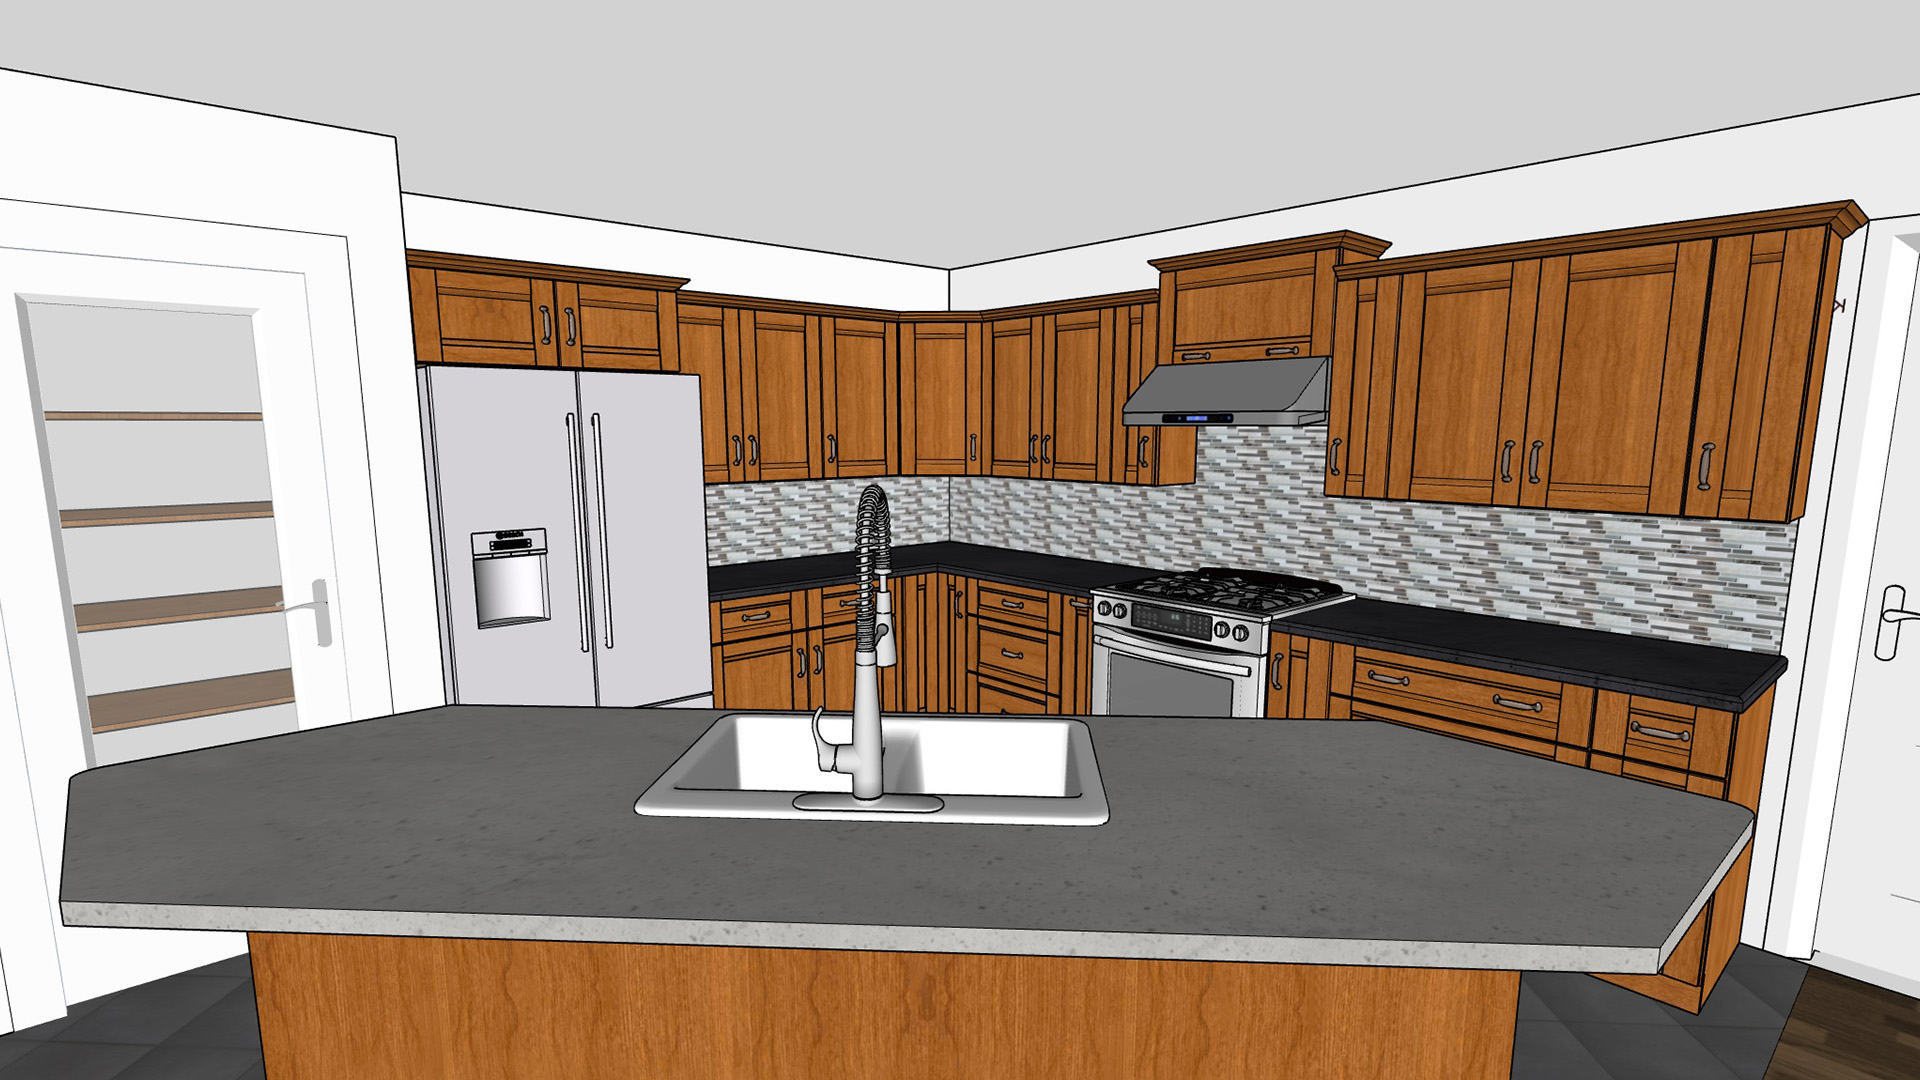 Model The Existing Kitchen